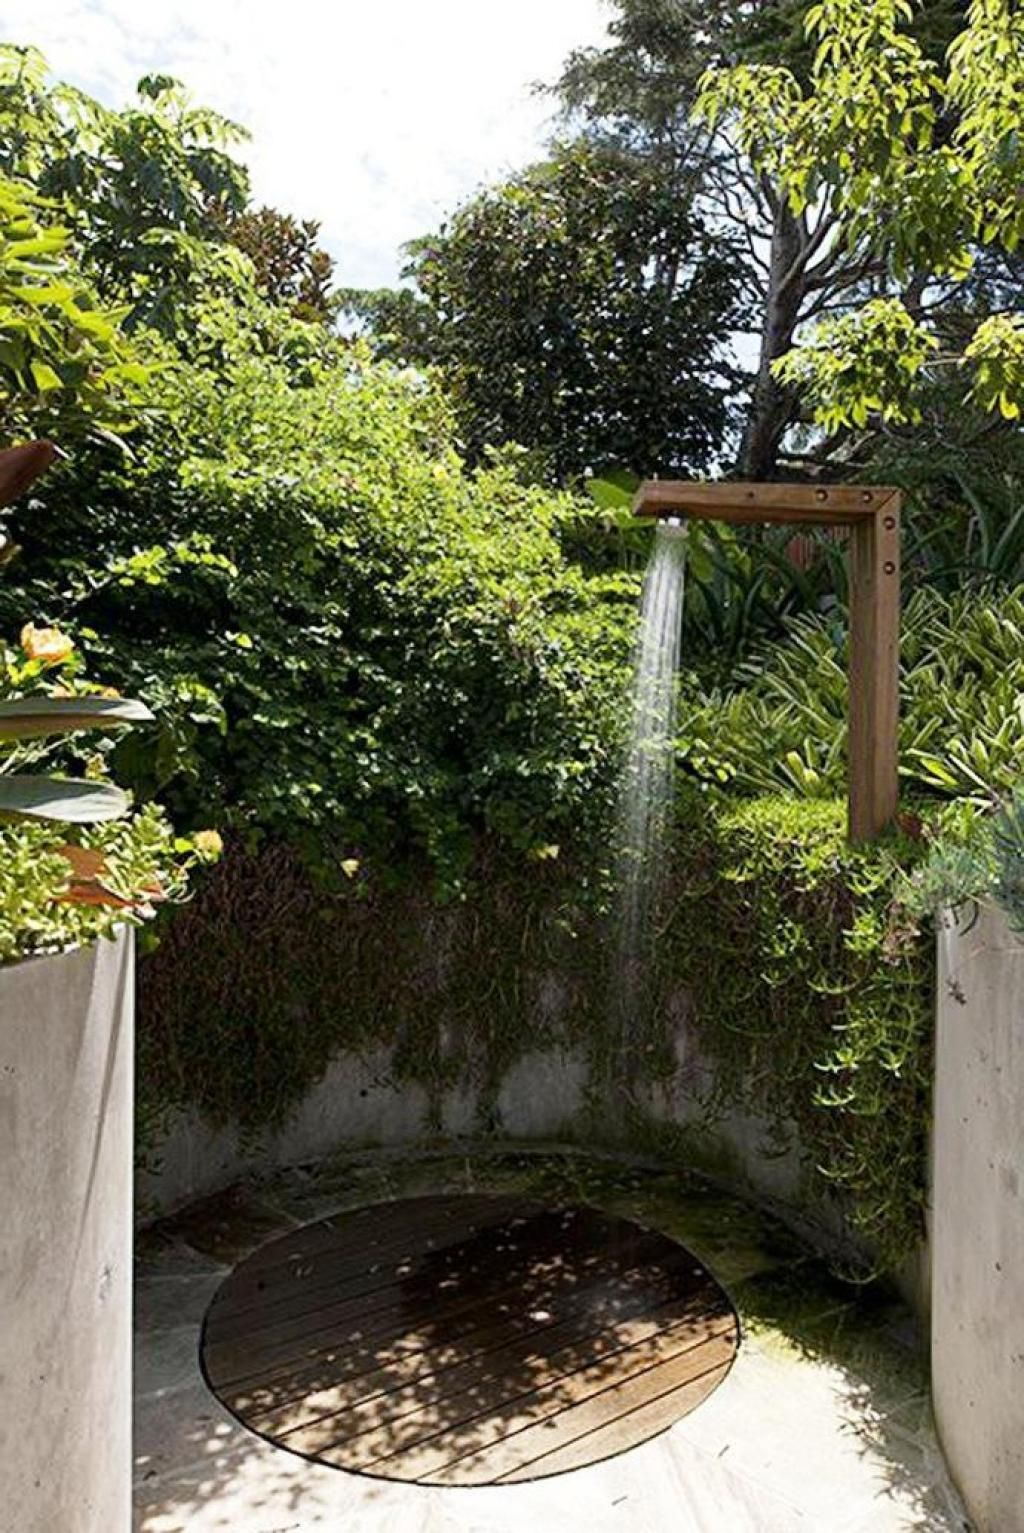 Contemporary Art Websites Outdoor Bathroom With Forest View Surounding With Clasic Traditional Design Showers The Best Outdoor Bathroom Ideas